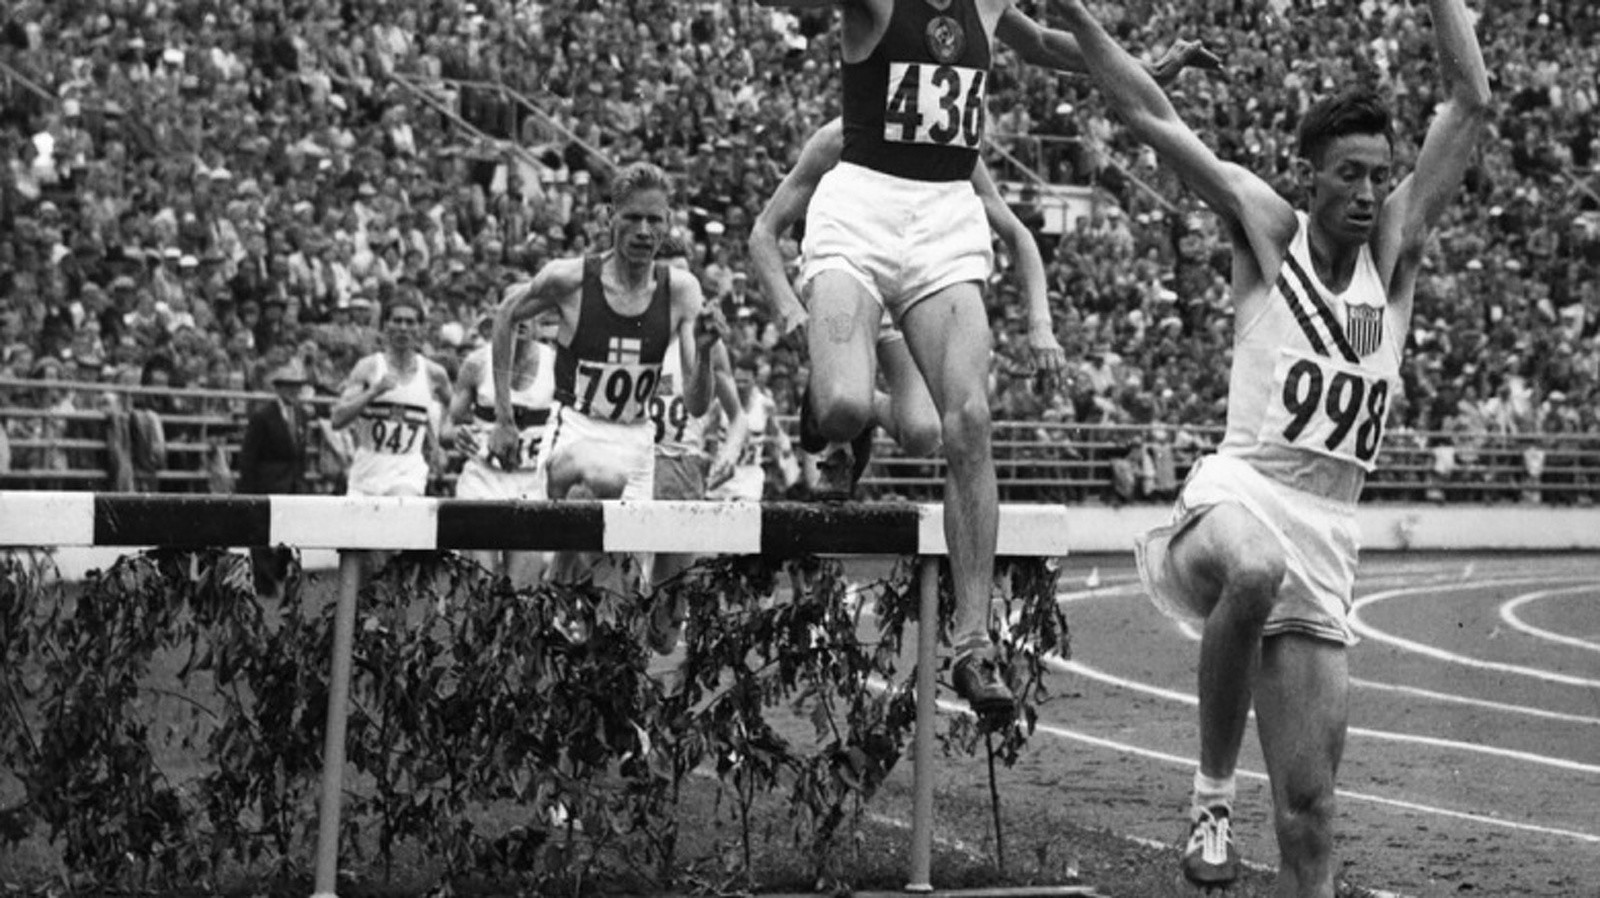 Ashenfelter, Olympic Gold Medalist Dies at 94